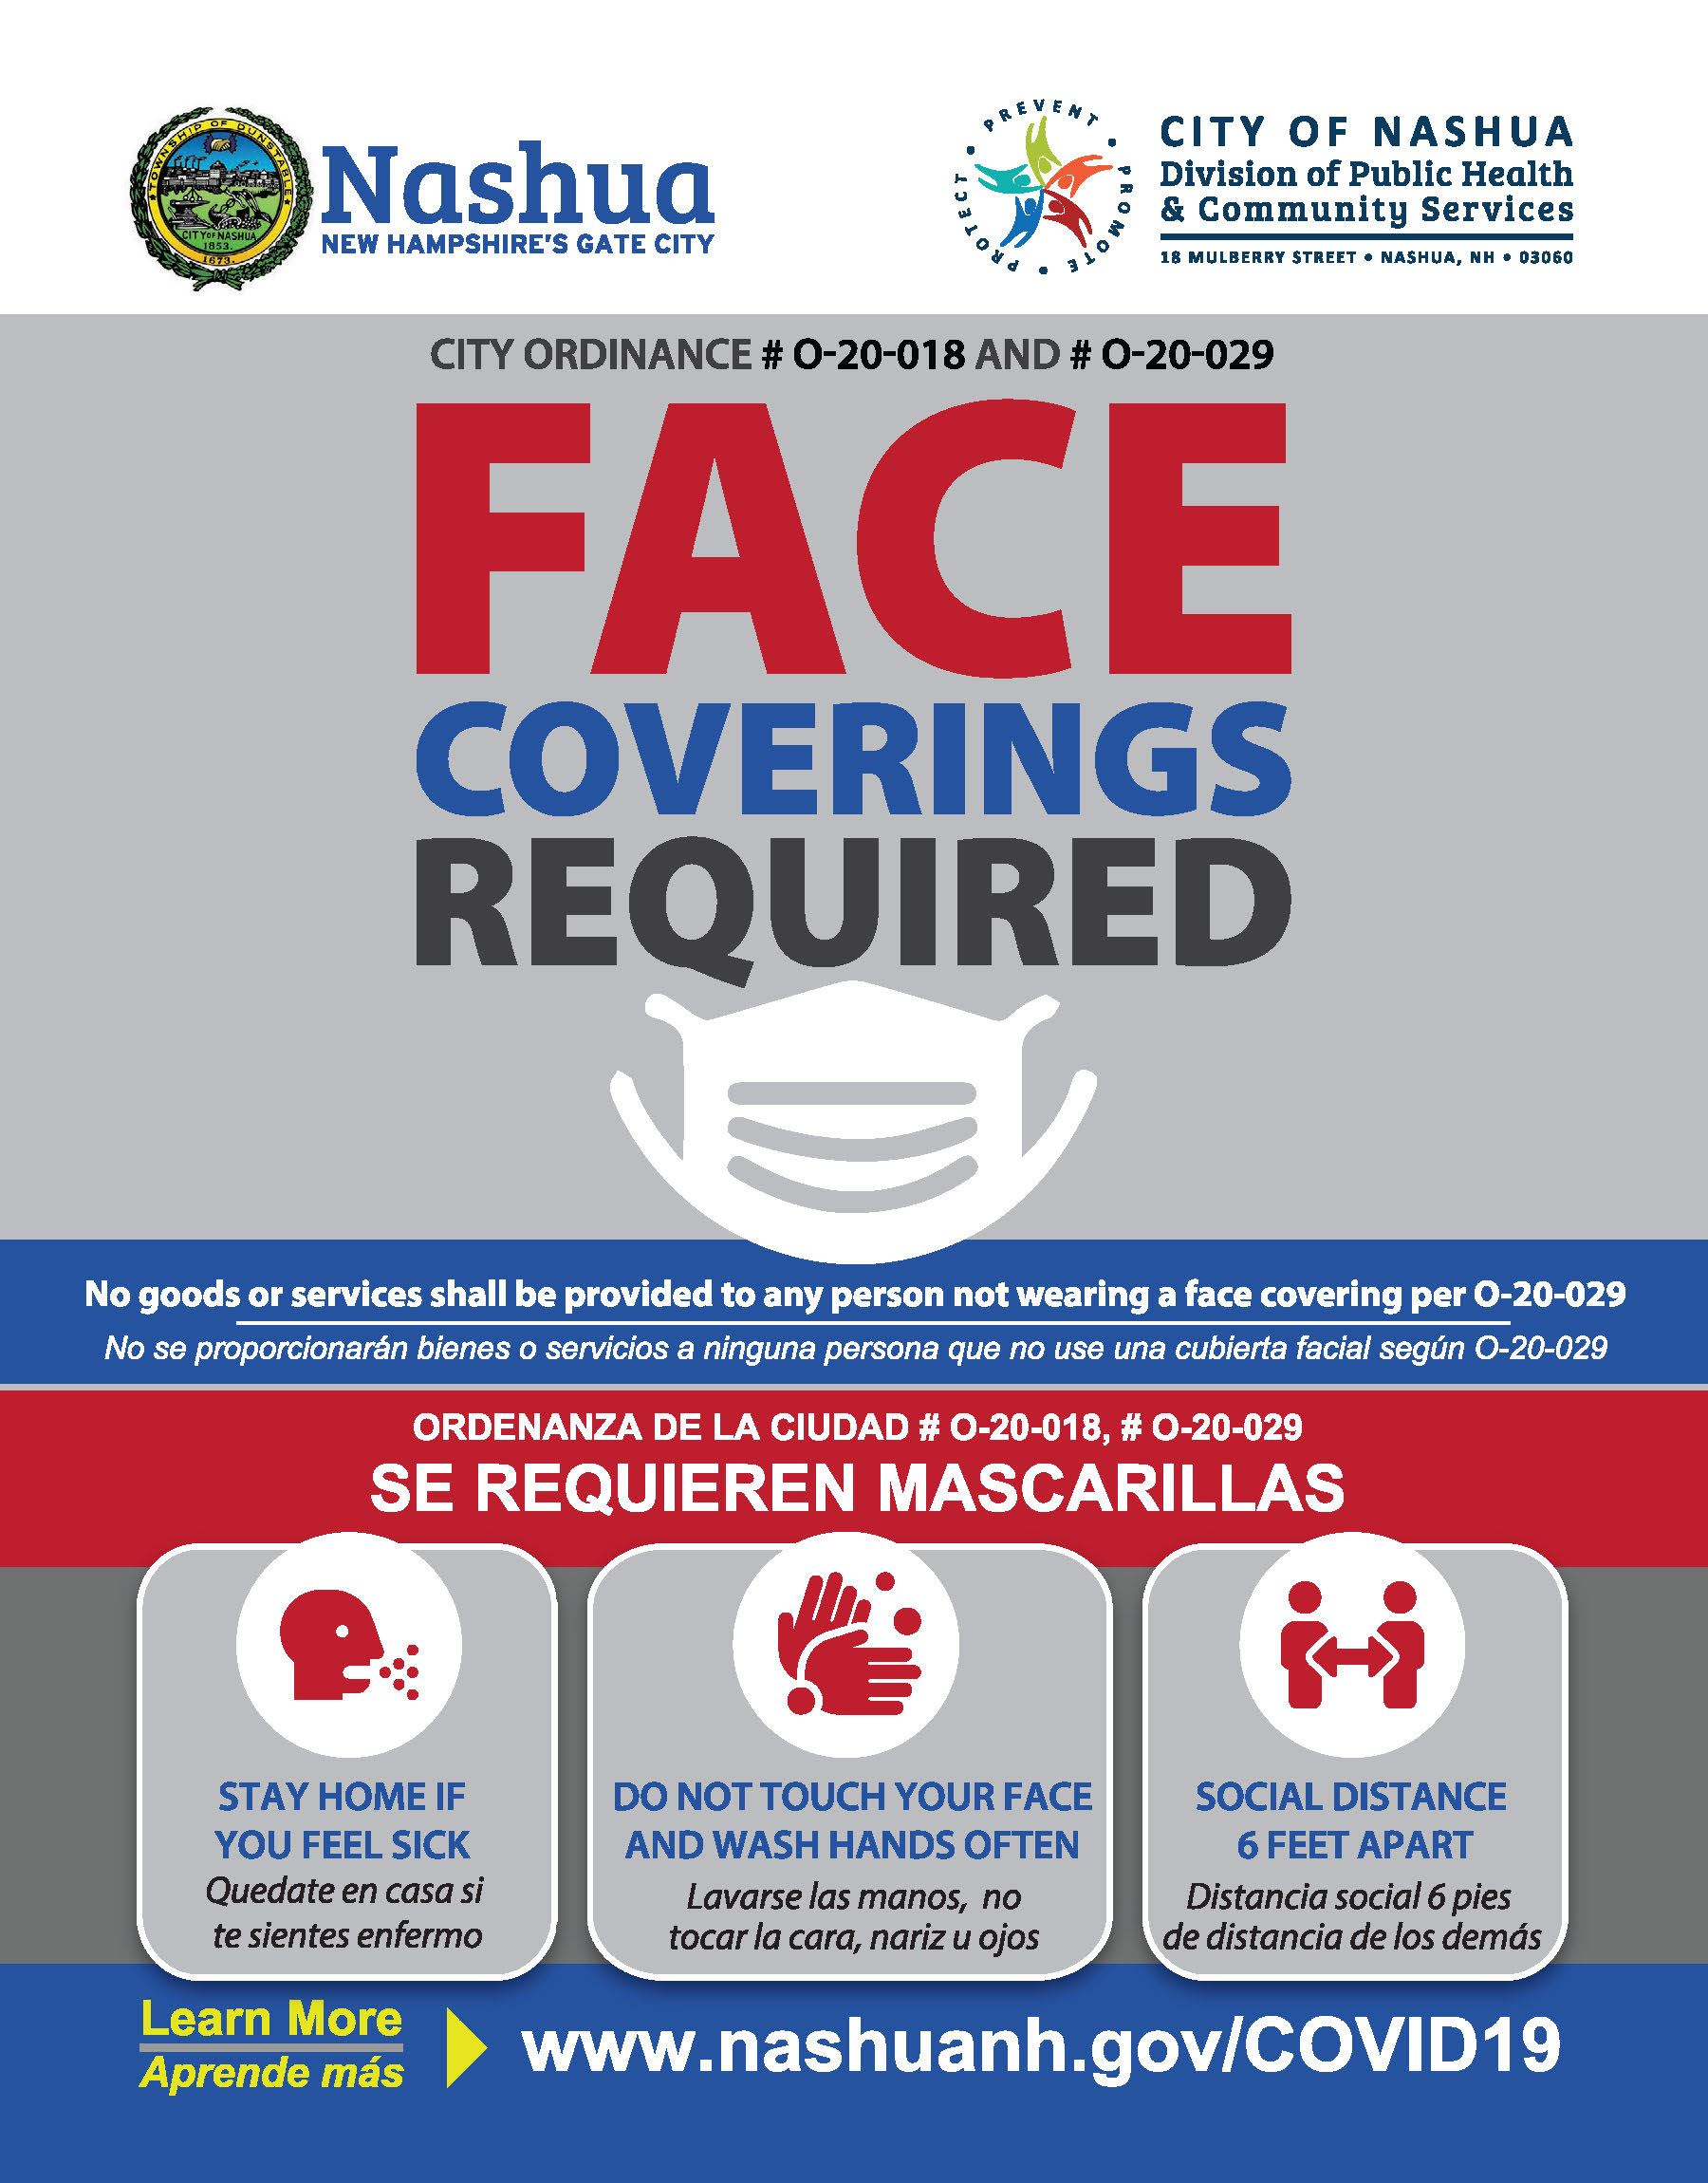 FaceCoveringsRequired poster small image